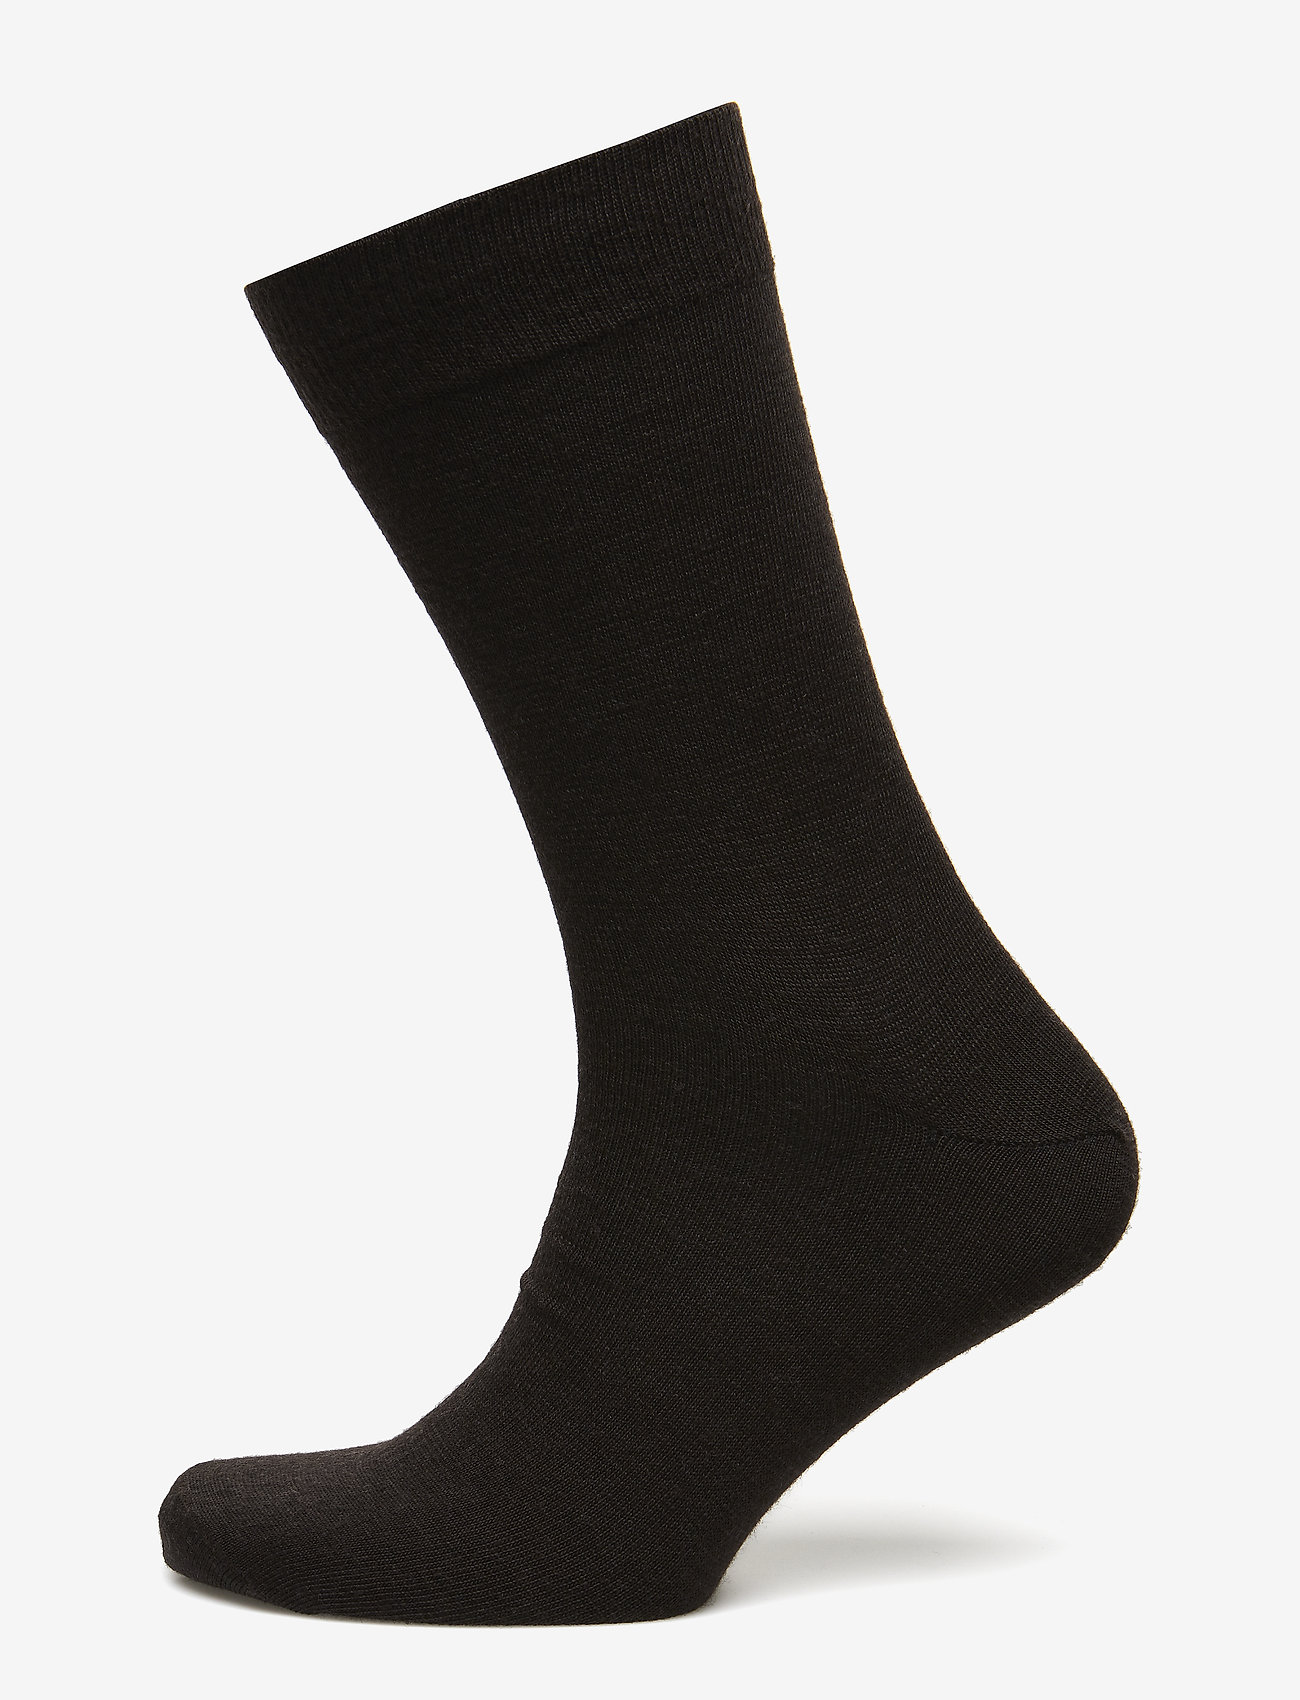 Egtved - Egtved socks cotton/wool twin, - regular socks - dark brown